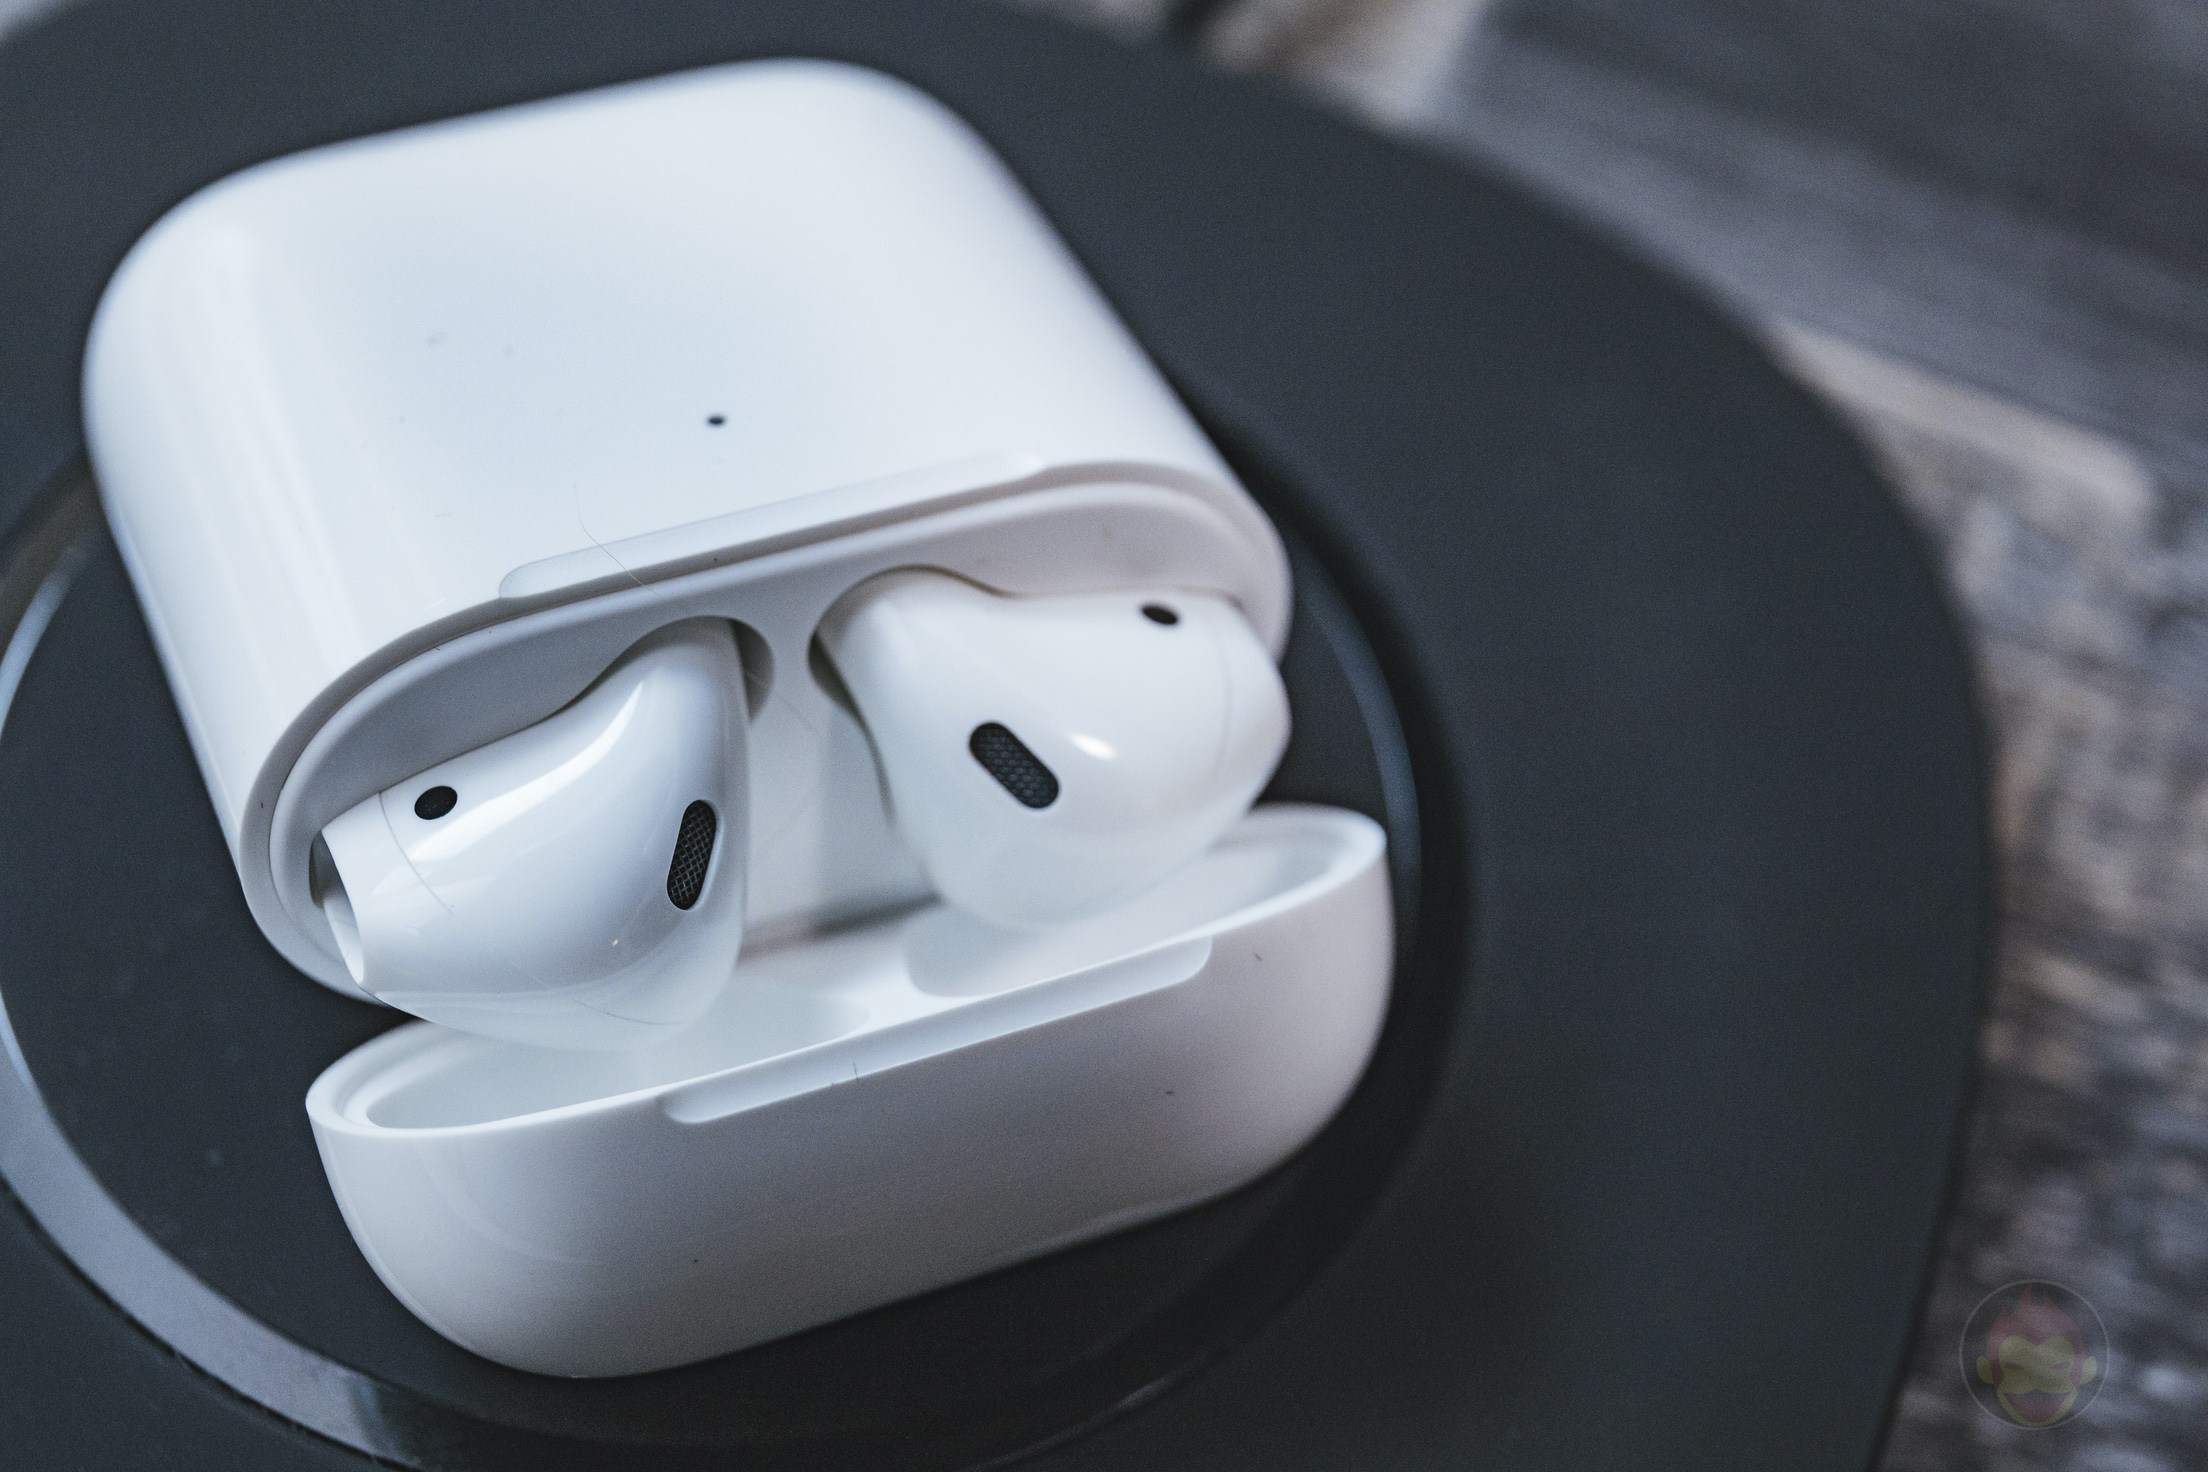 AirPods-2nd-Generation-2019-Review-25.jpg